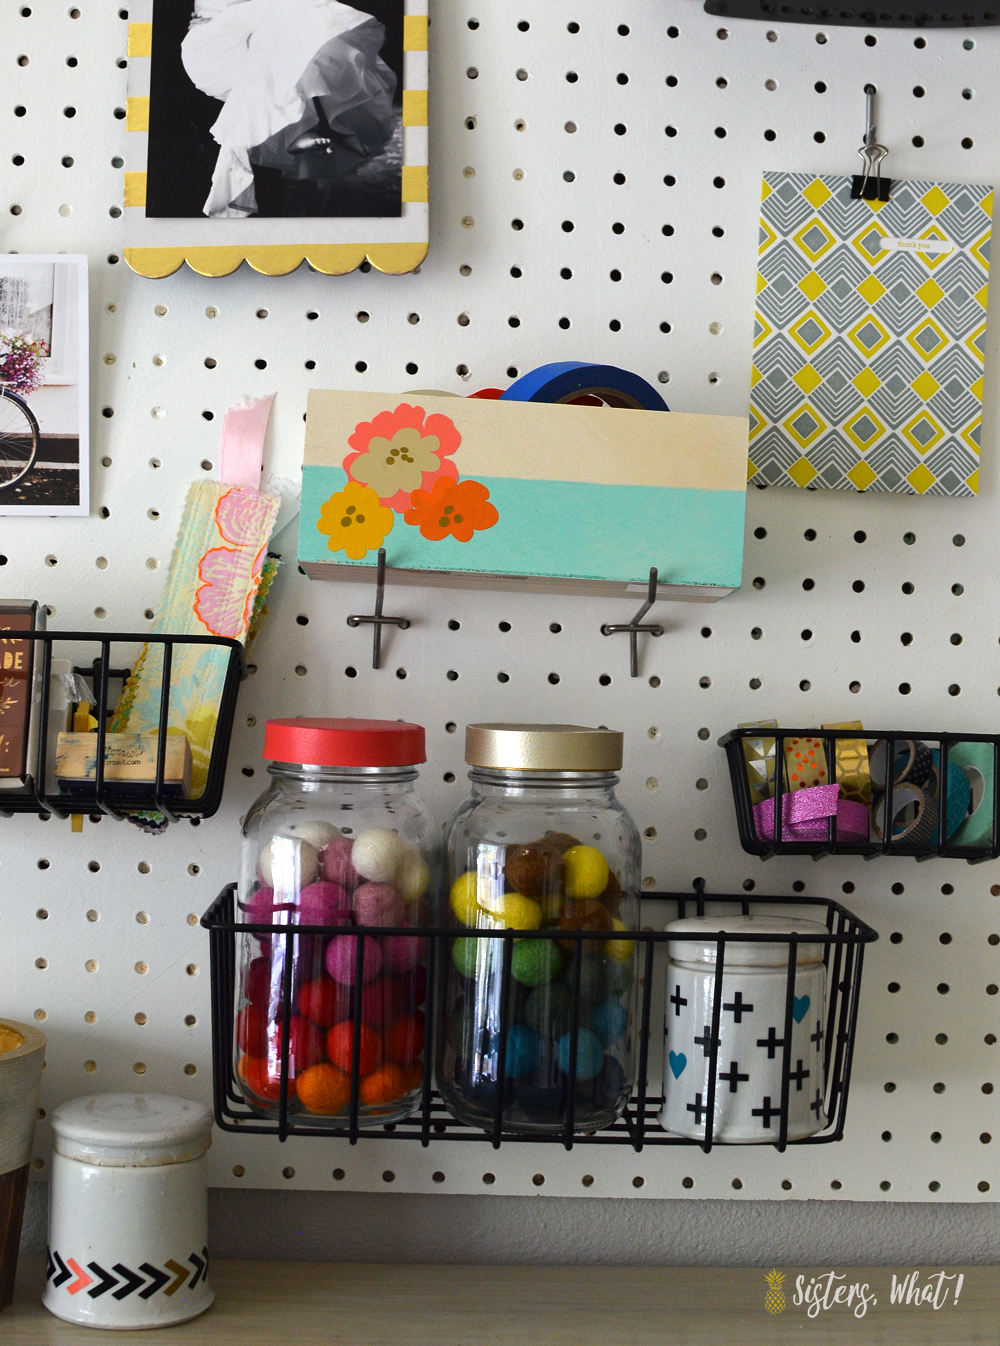 Use Pegboard Baskets To Hold Craft Storage On Pegboard